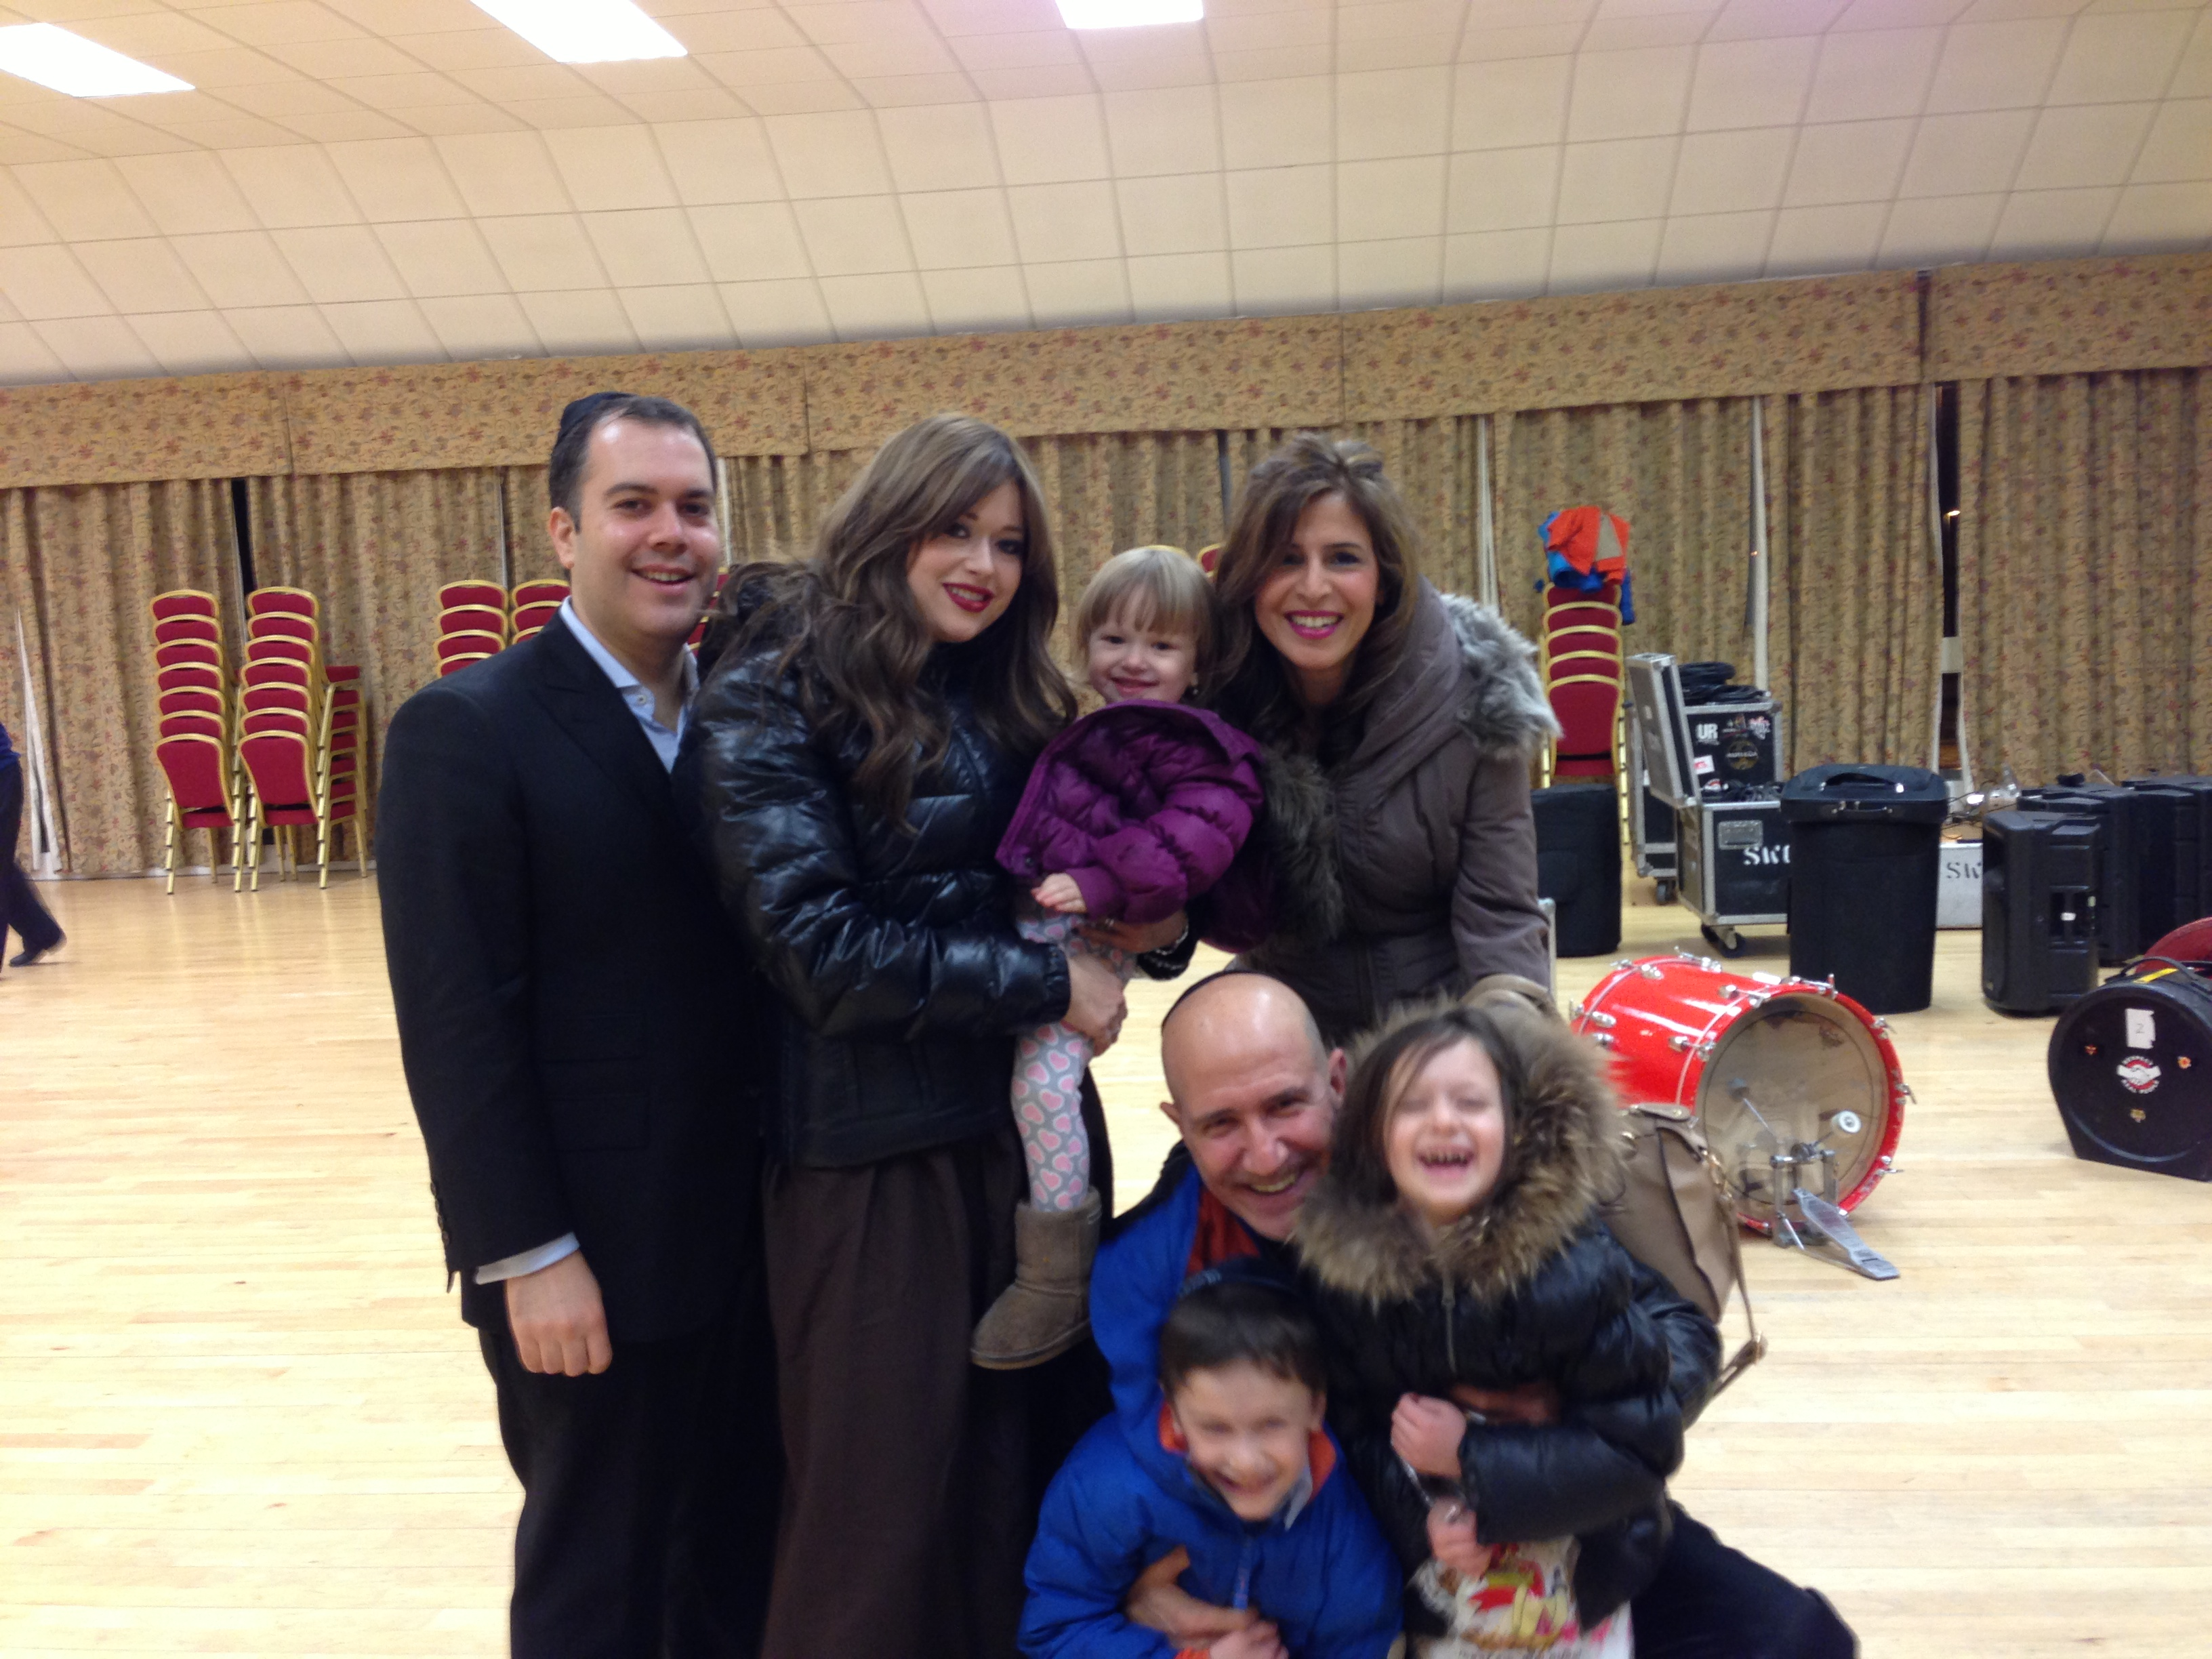 SHolom and Pessy and family with Yossi and Iris